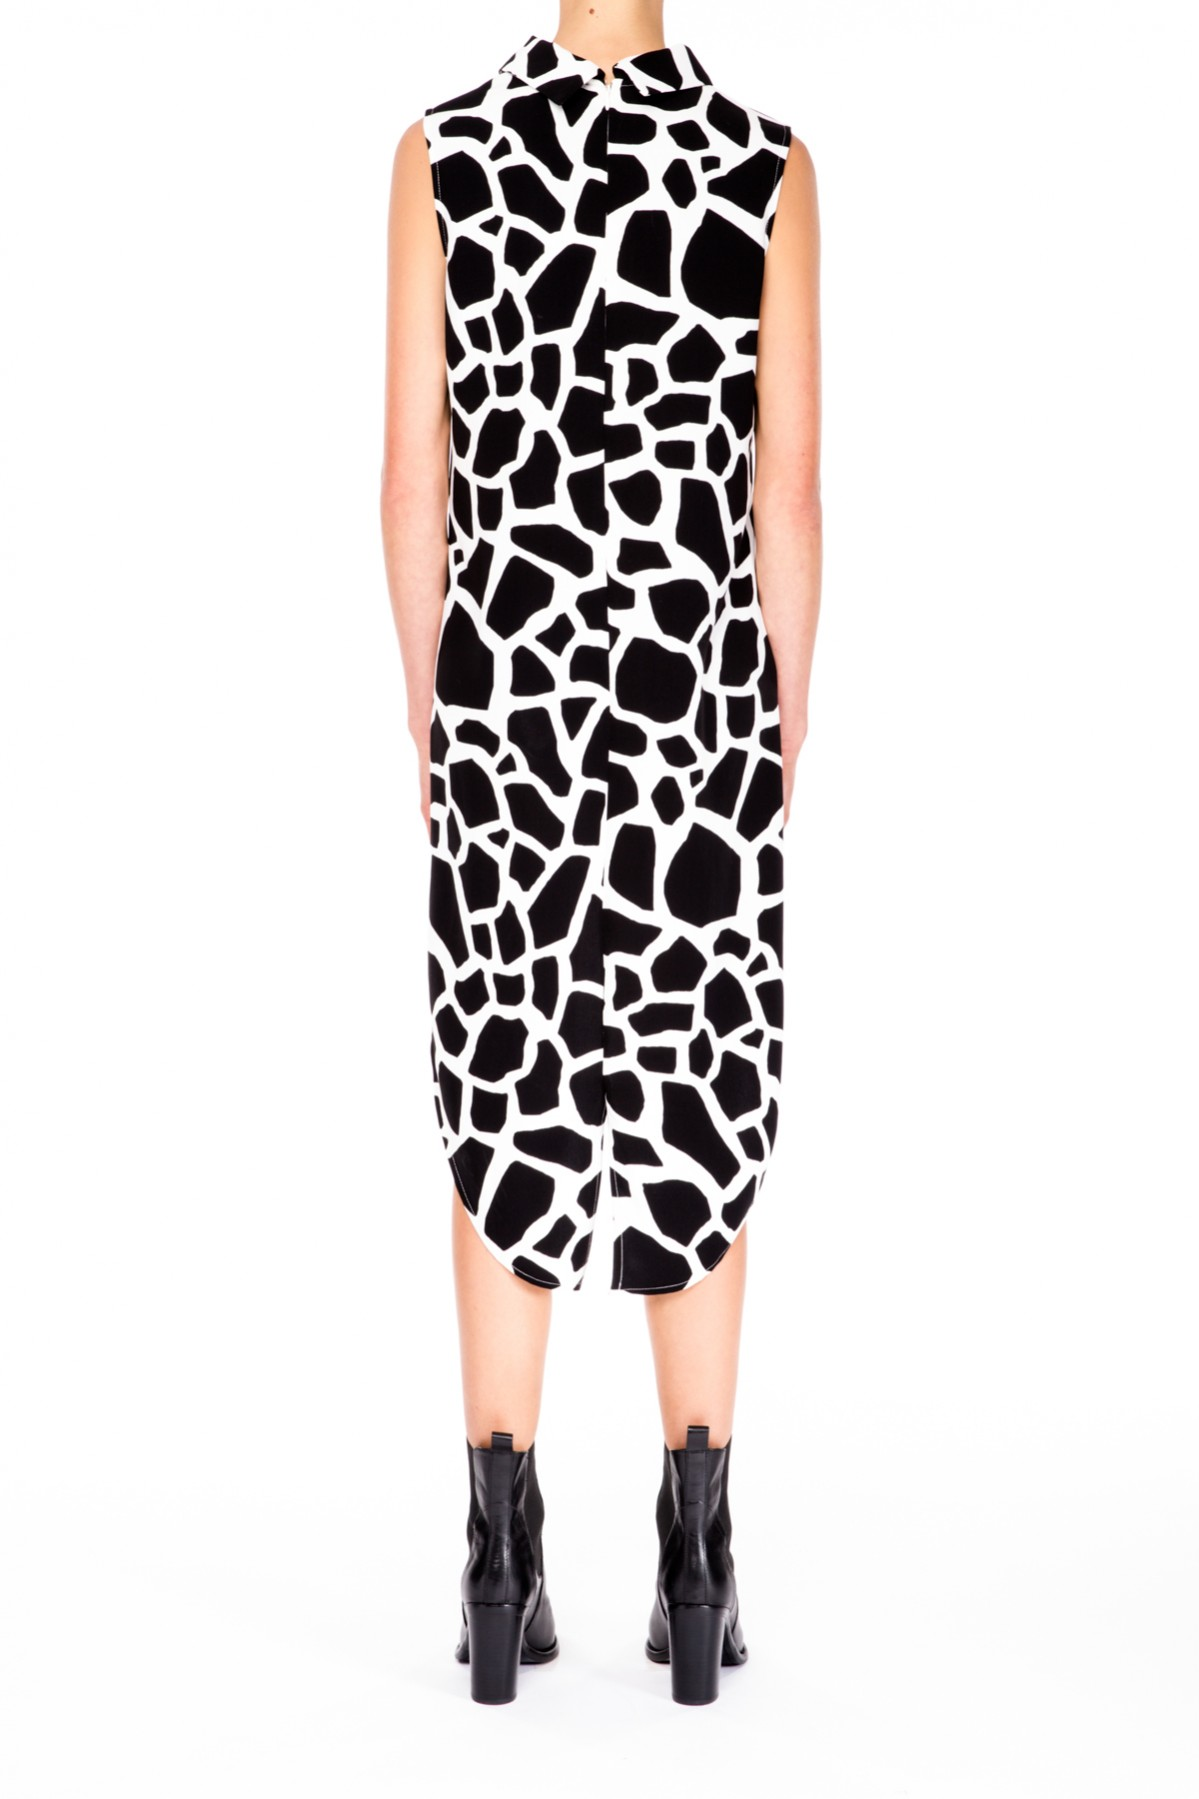 Jaggar TOTALLY WILD DRESS - BNKR